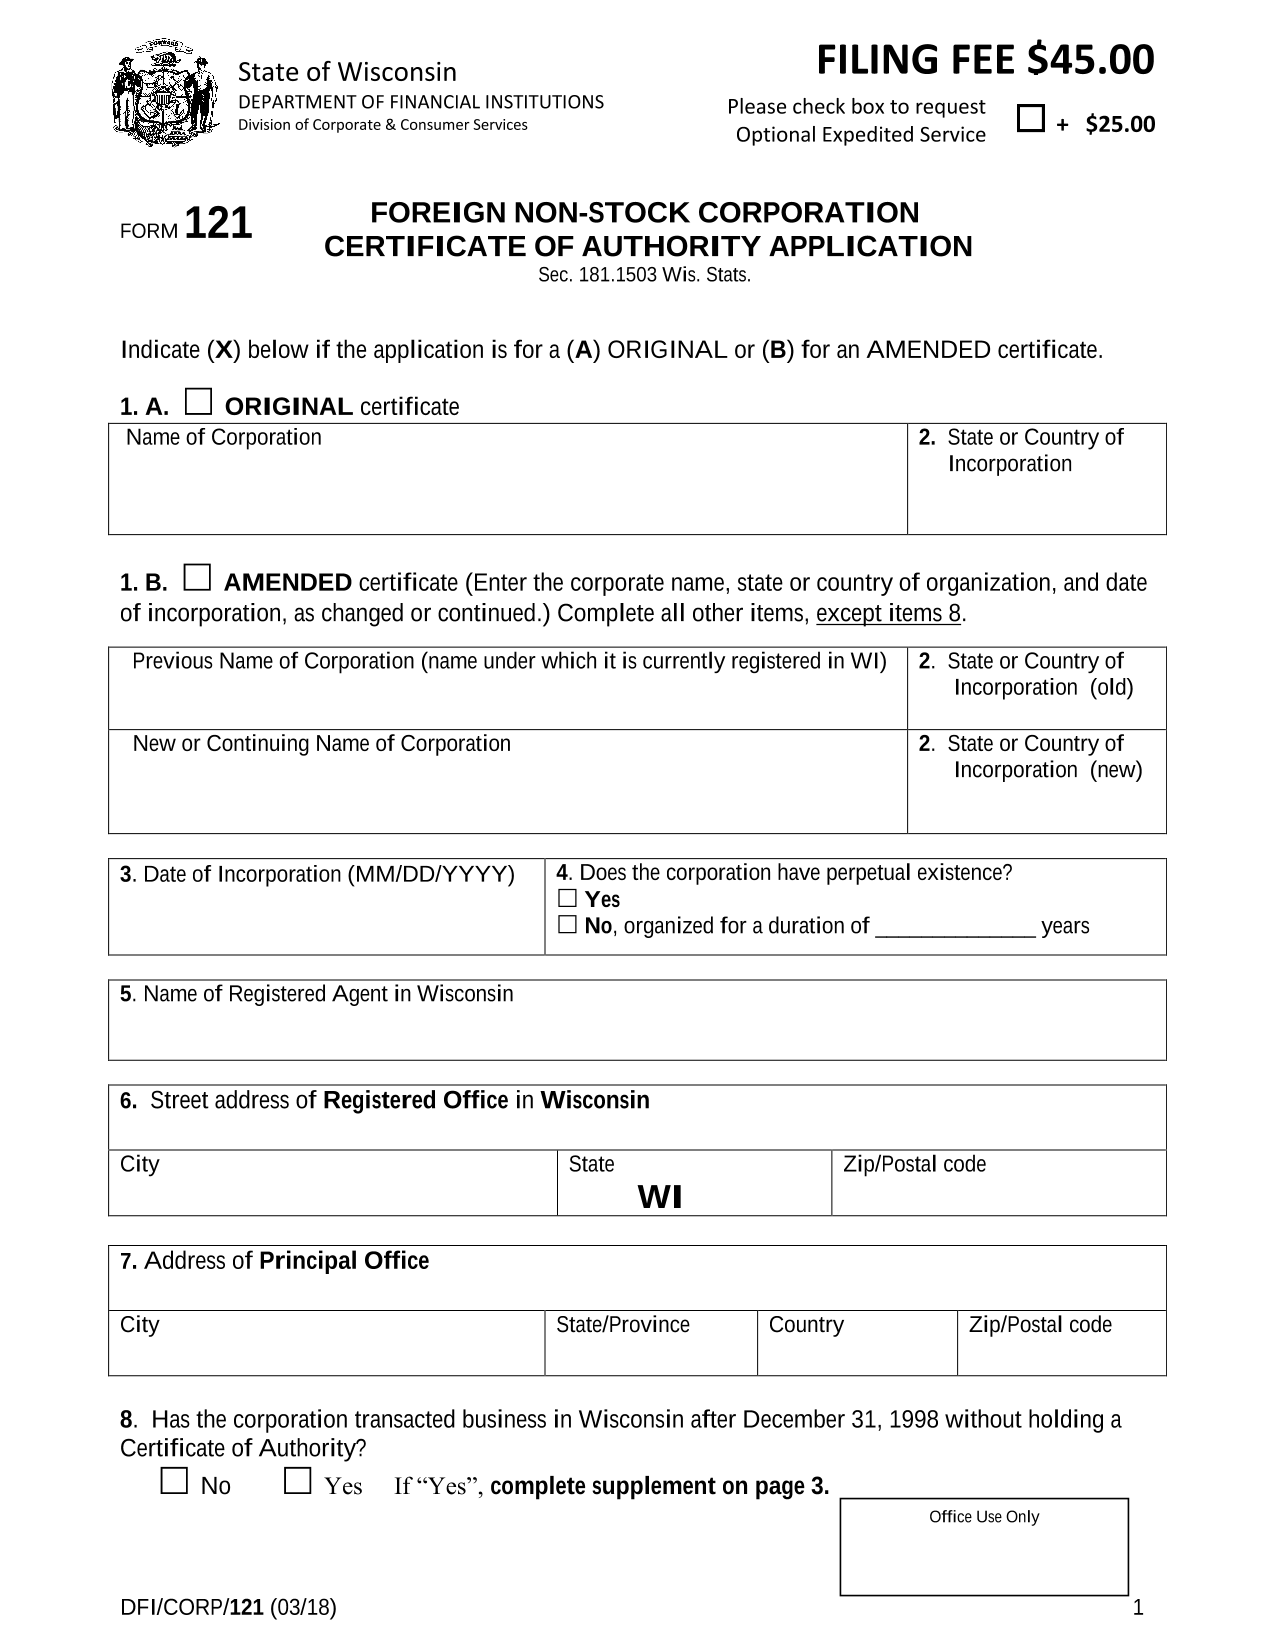 wisconsin-foreign-nonstock-corporation-certificate-of-authority-application